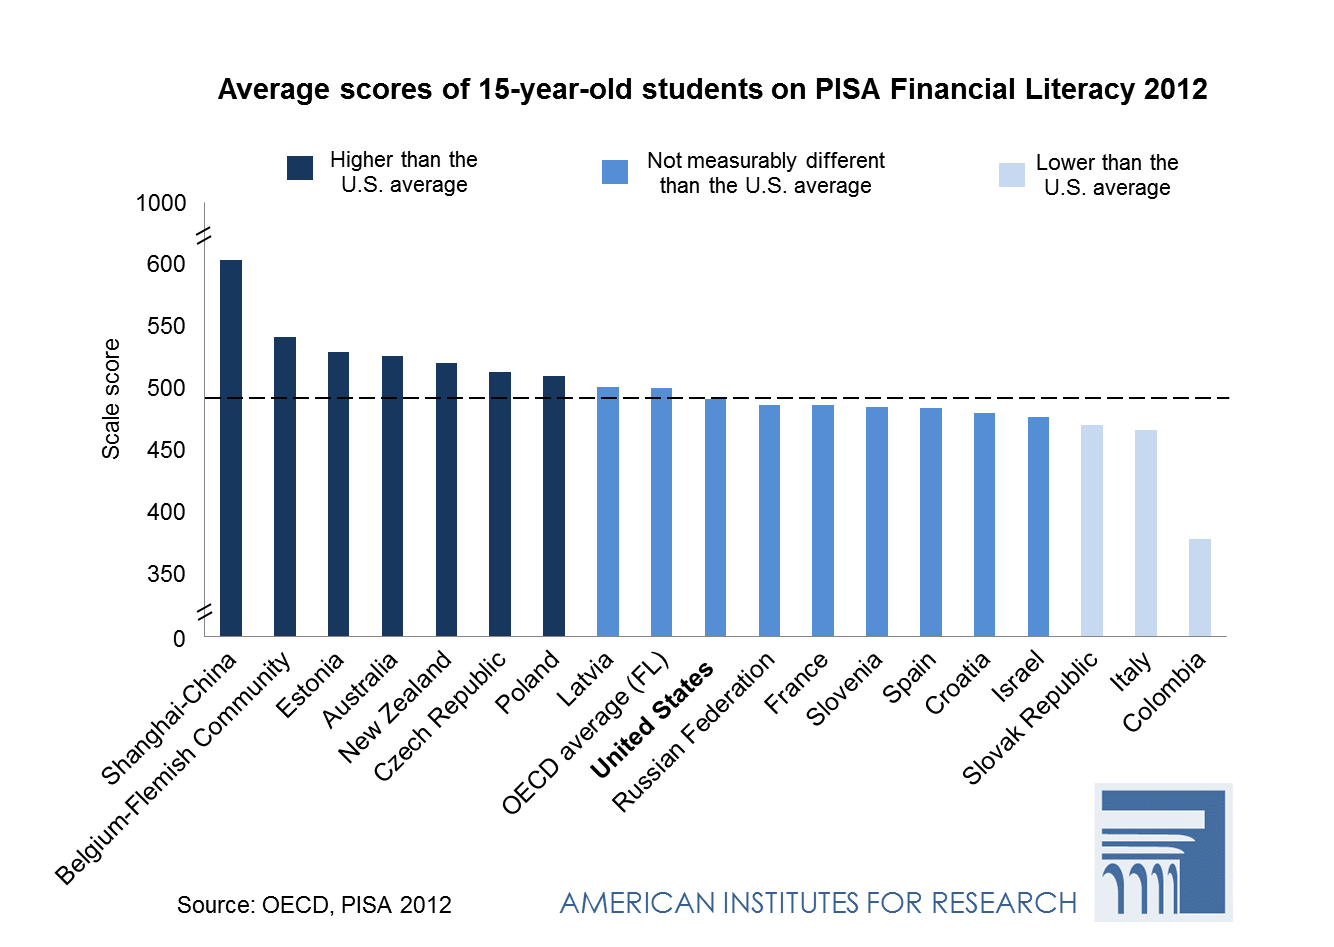 Money Matters: Financial Literacy of U.S. Teenagers Graph 1 - Average Scores of 15-year-old students on PISA Financial Literacy 2012